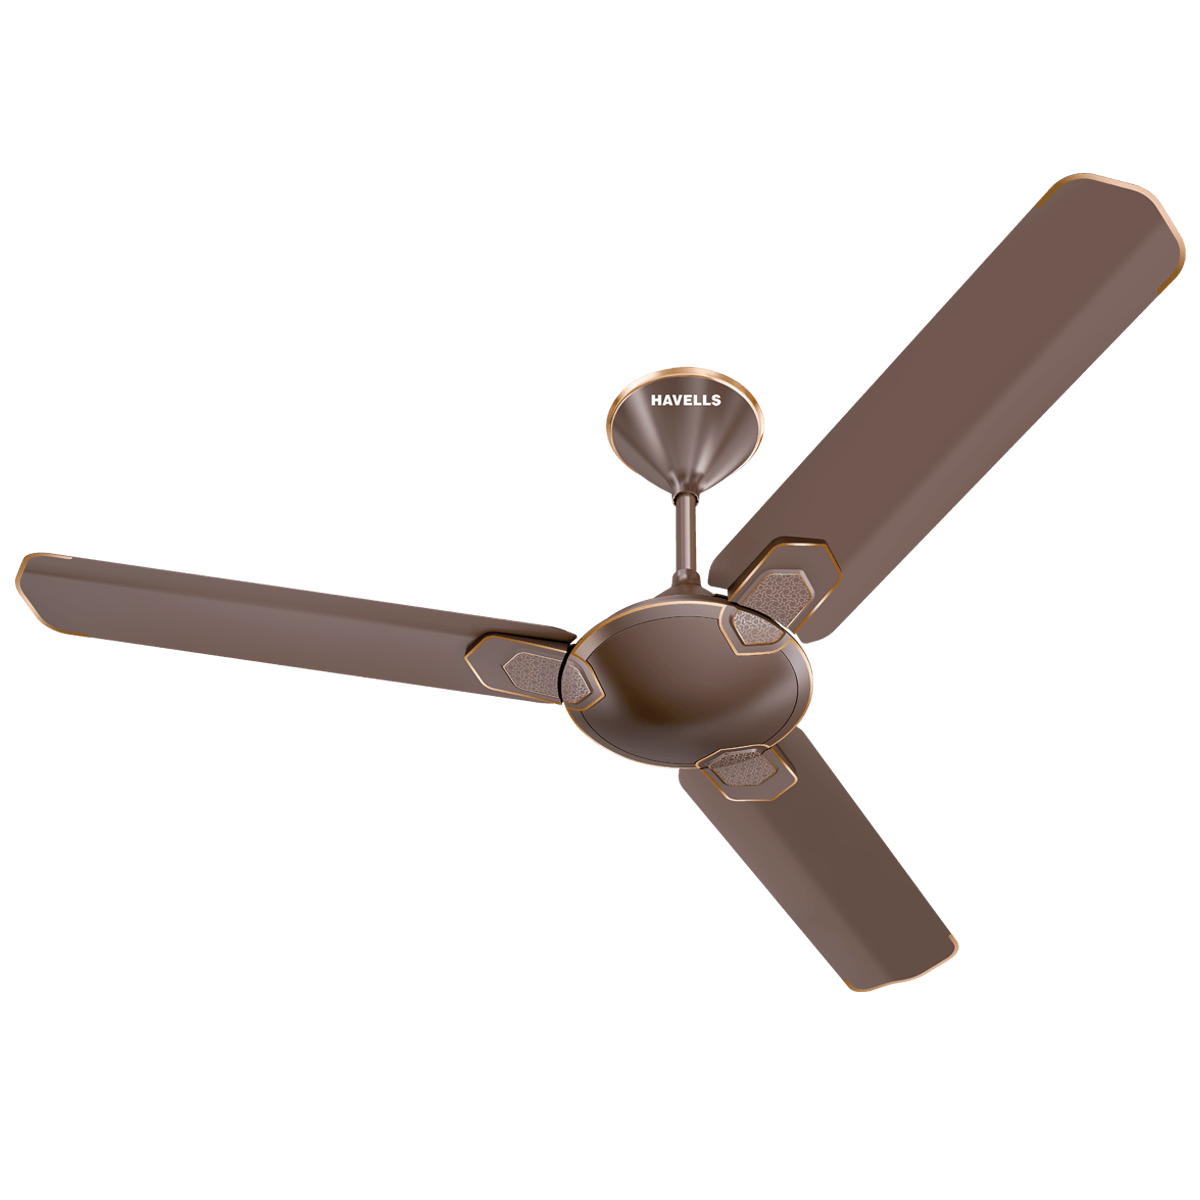 Havells Carnesia 120cm Sweep 3 Blade Ceiling Fan (Inverter Compatible, FHCCNSTDLC48, Dusk-LT Copper)